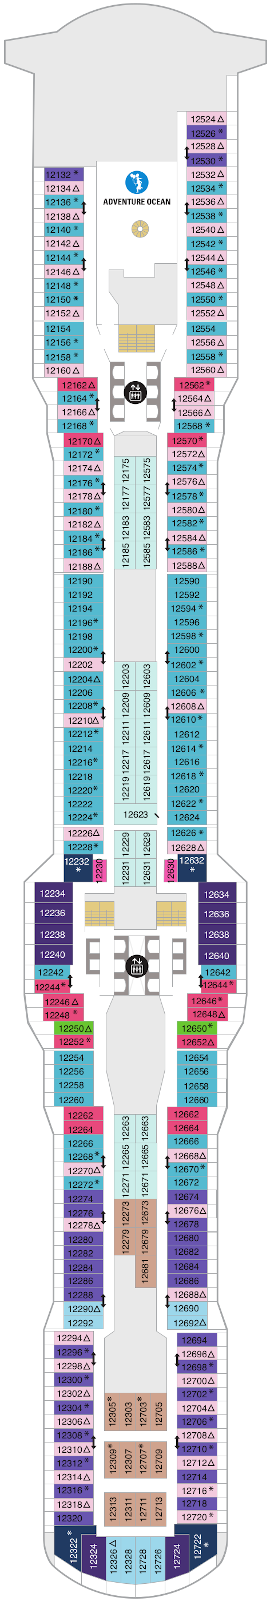 Spectrum Of The Seas Deck Twelve Deck Plan